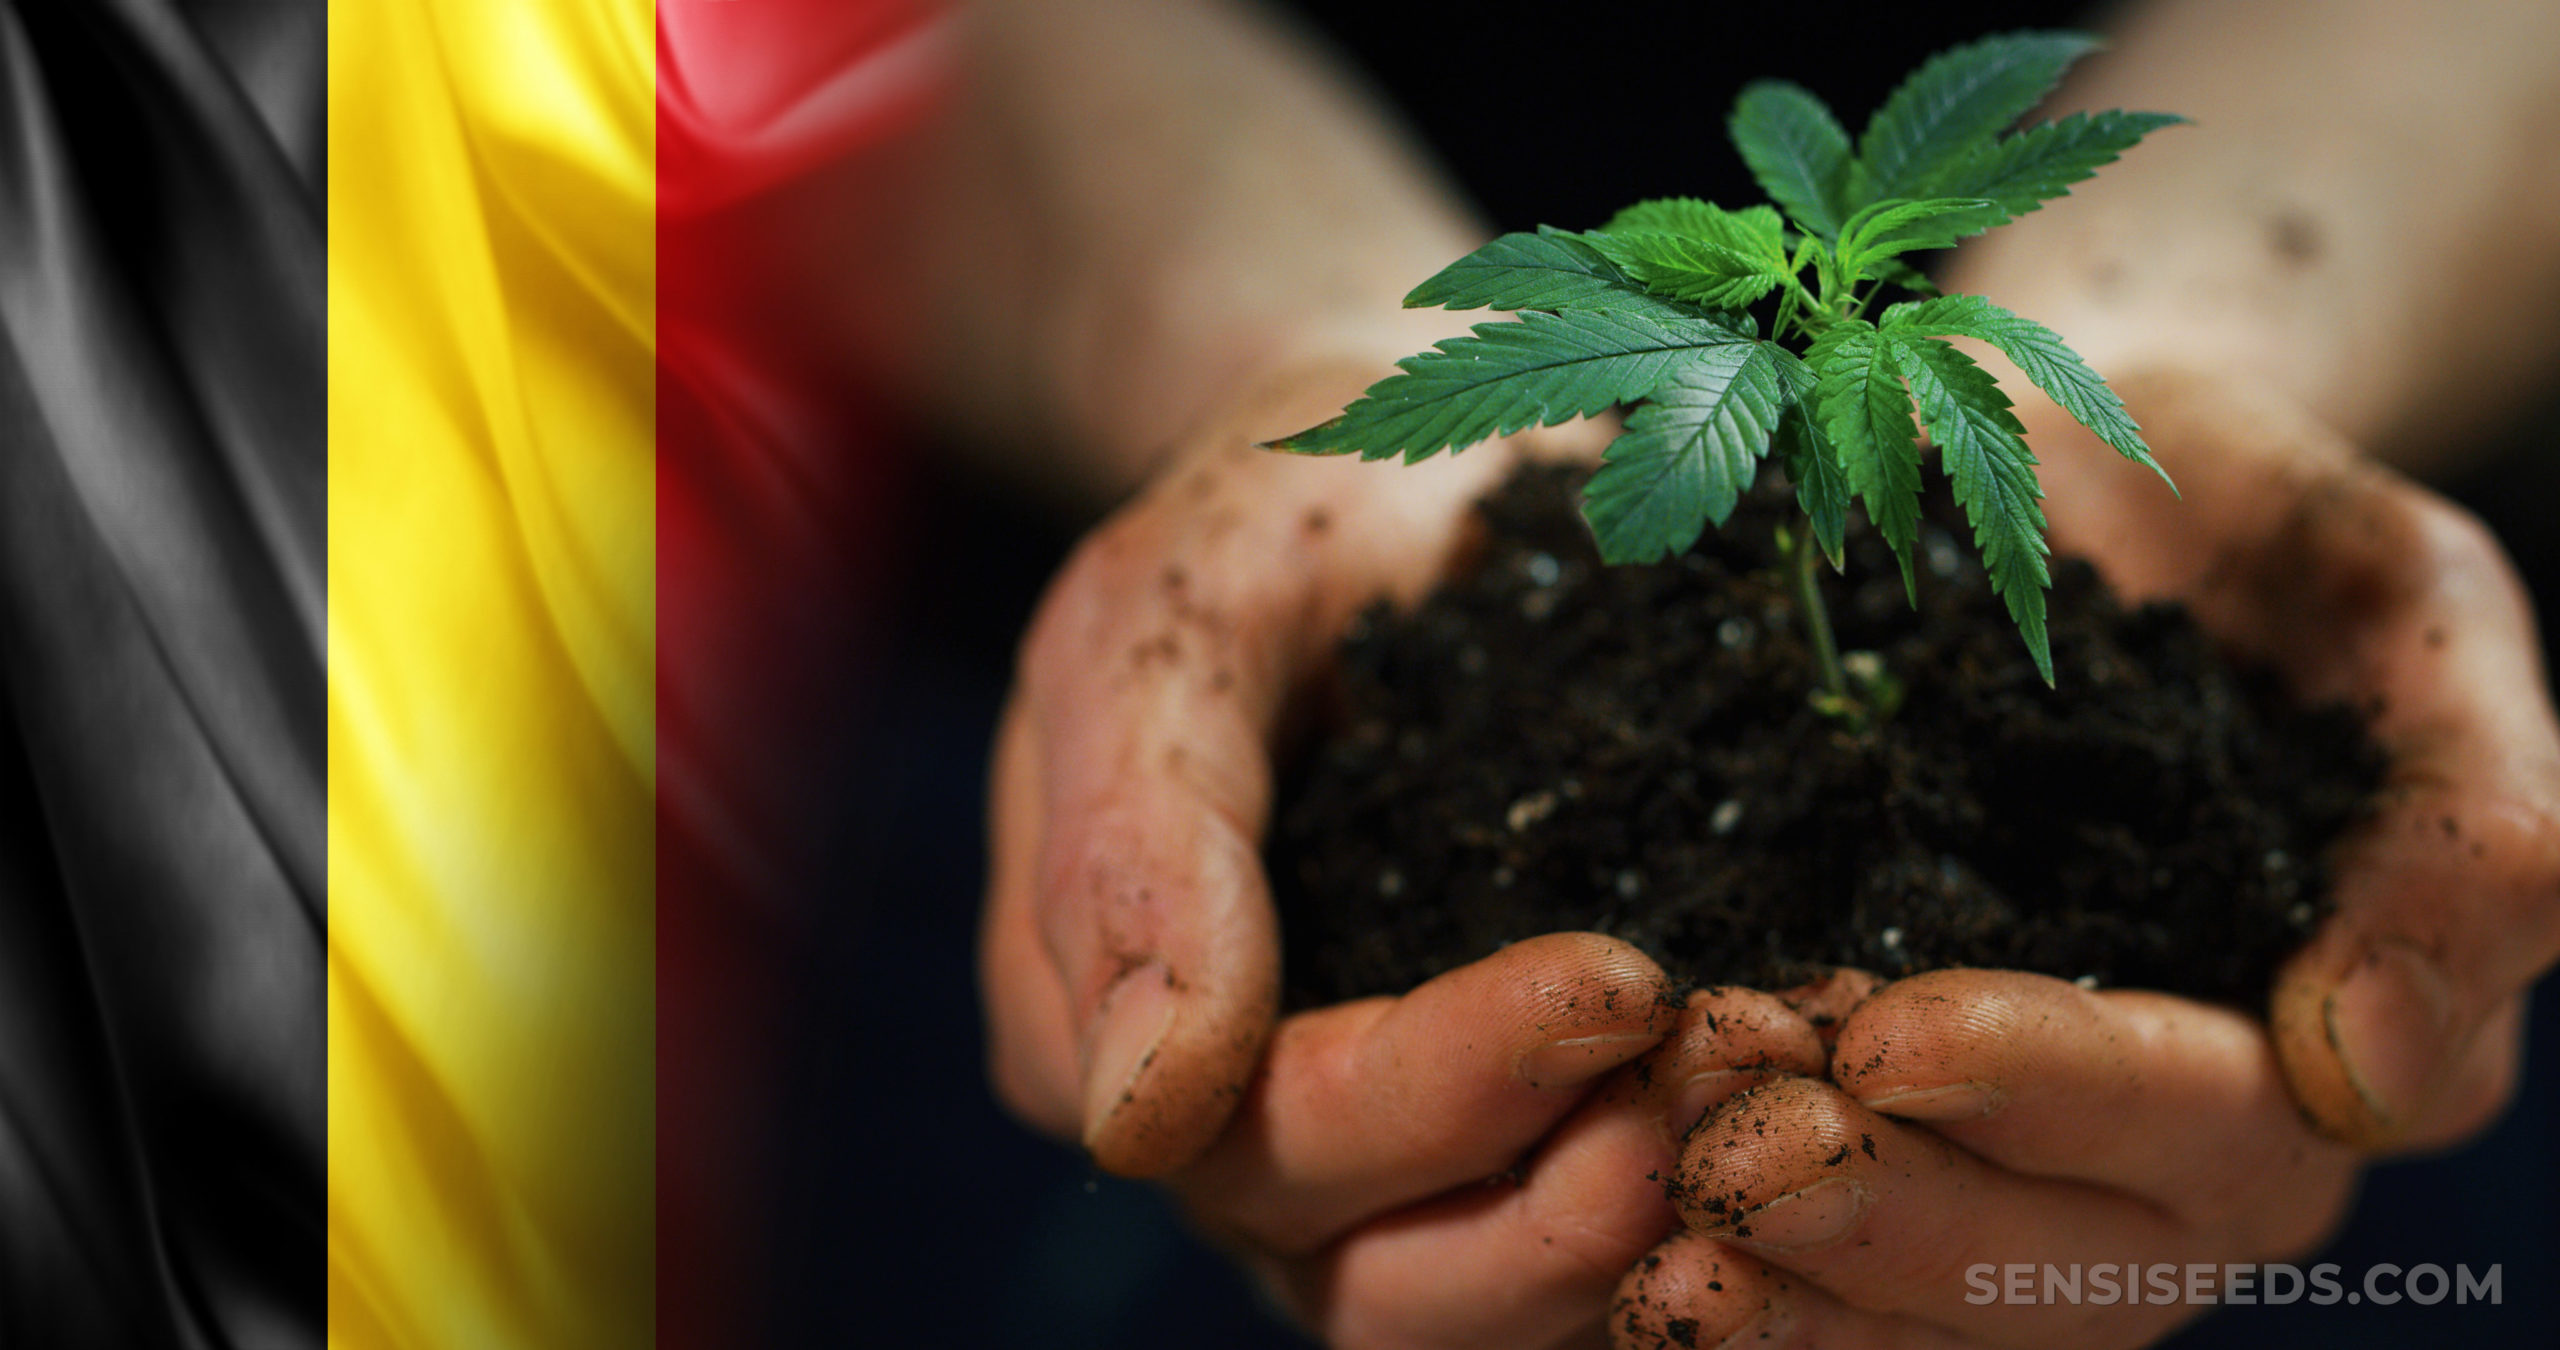 The Belgian flag and a person holding a cannabis plant in their hands